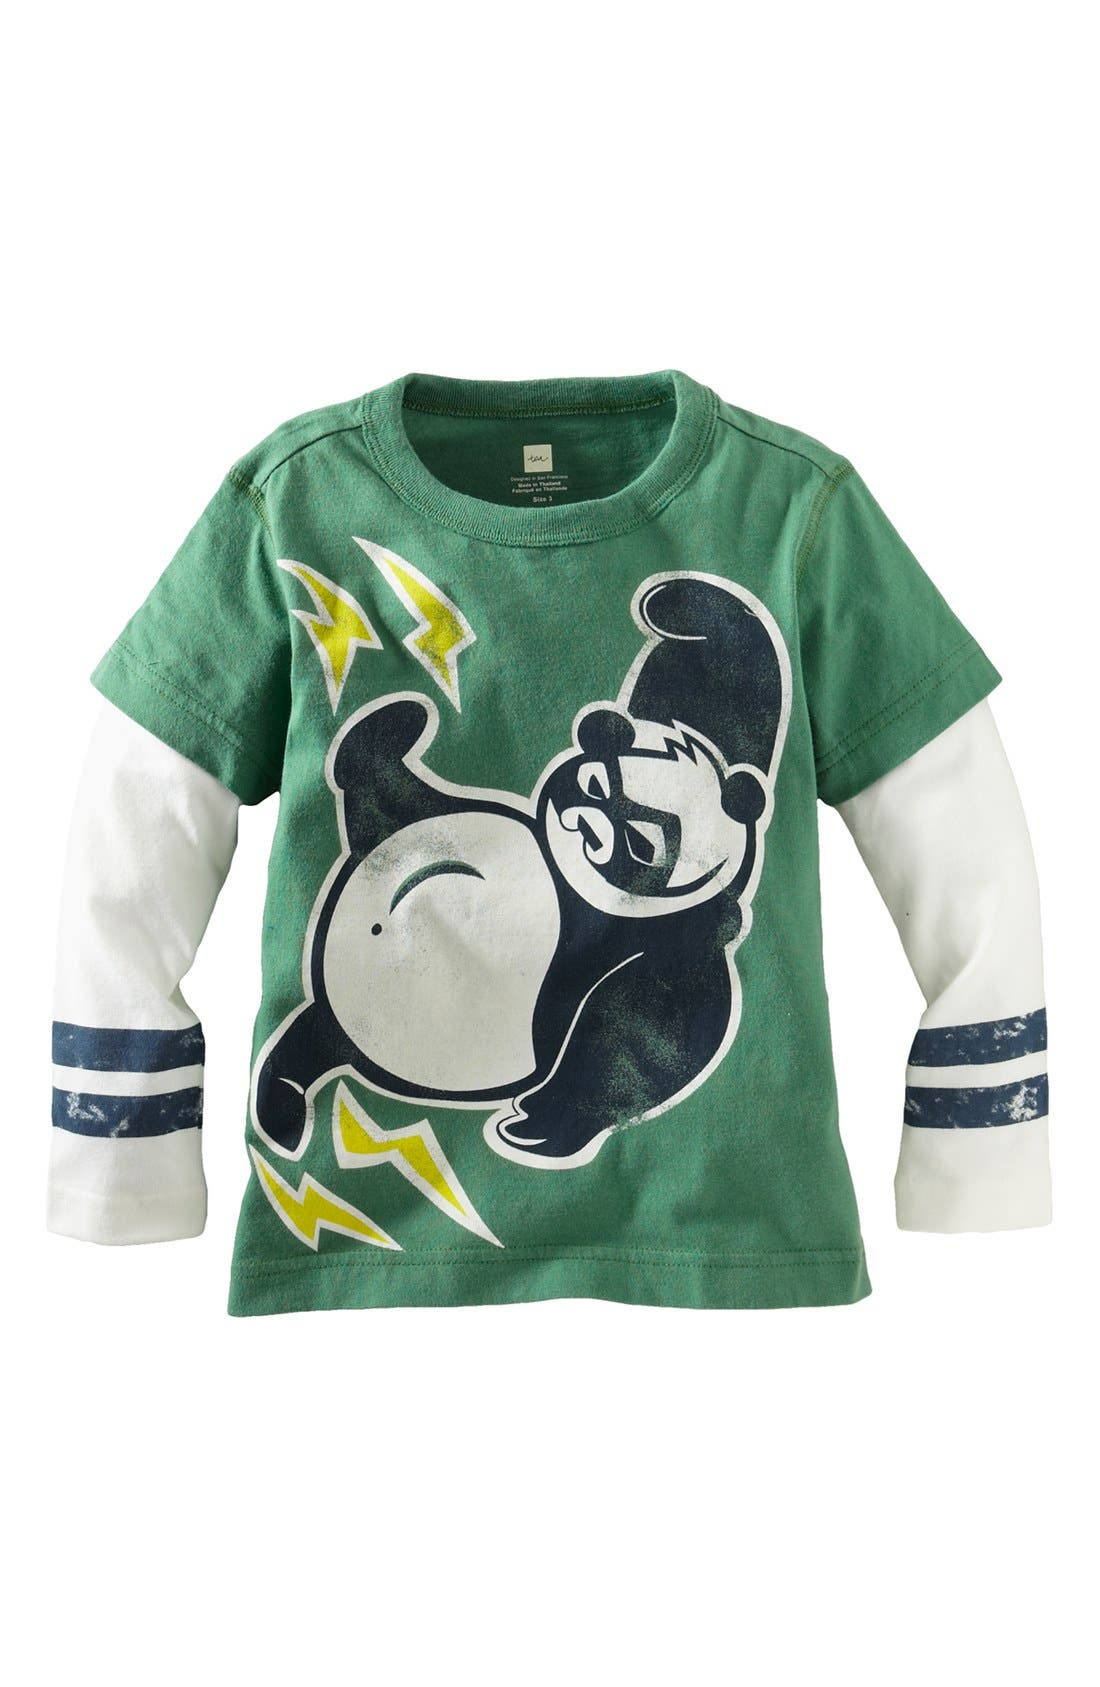 Main Image - Tea Collection 'Super Panda Double Decker' T-Shirt (Toddler Boys)